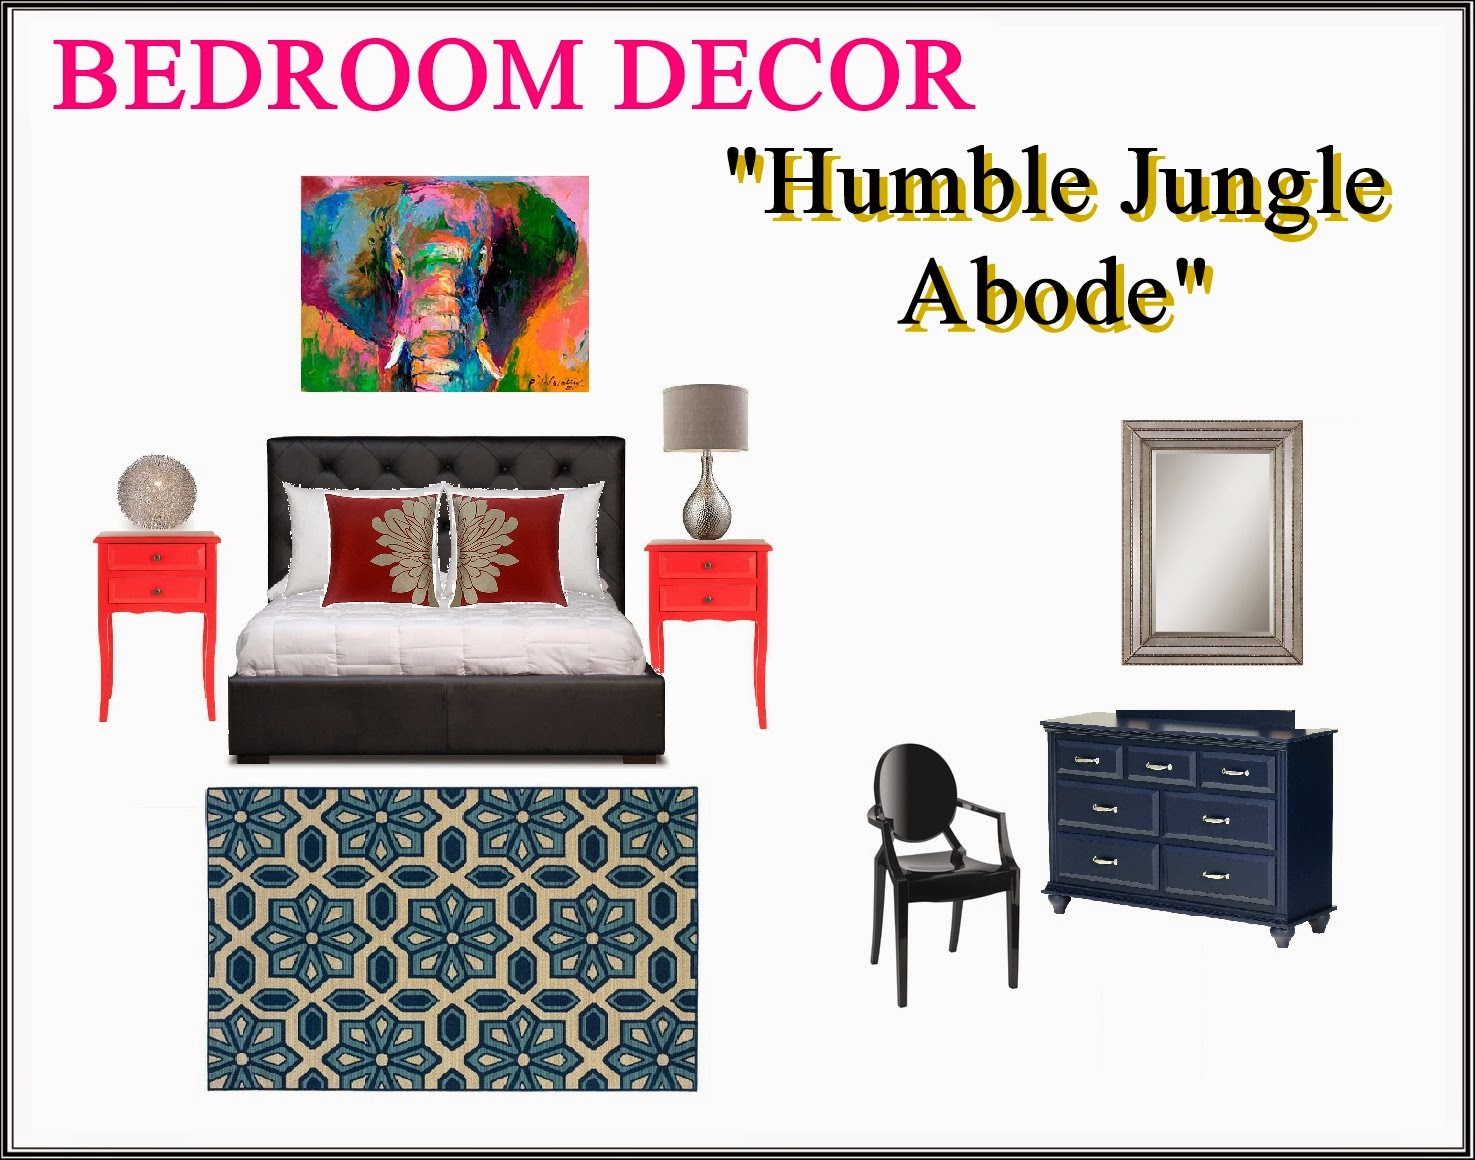 Unique Bedroom Accessories Meg Made Creations Bedroom Decor Styles Unique Ideas